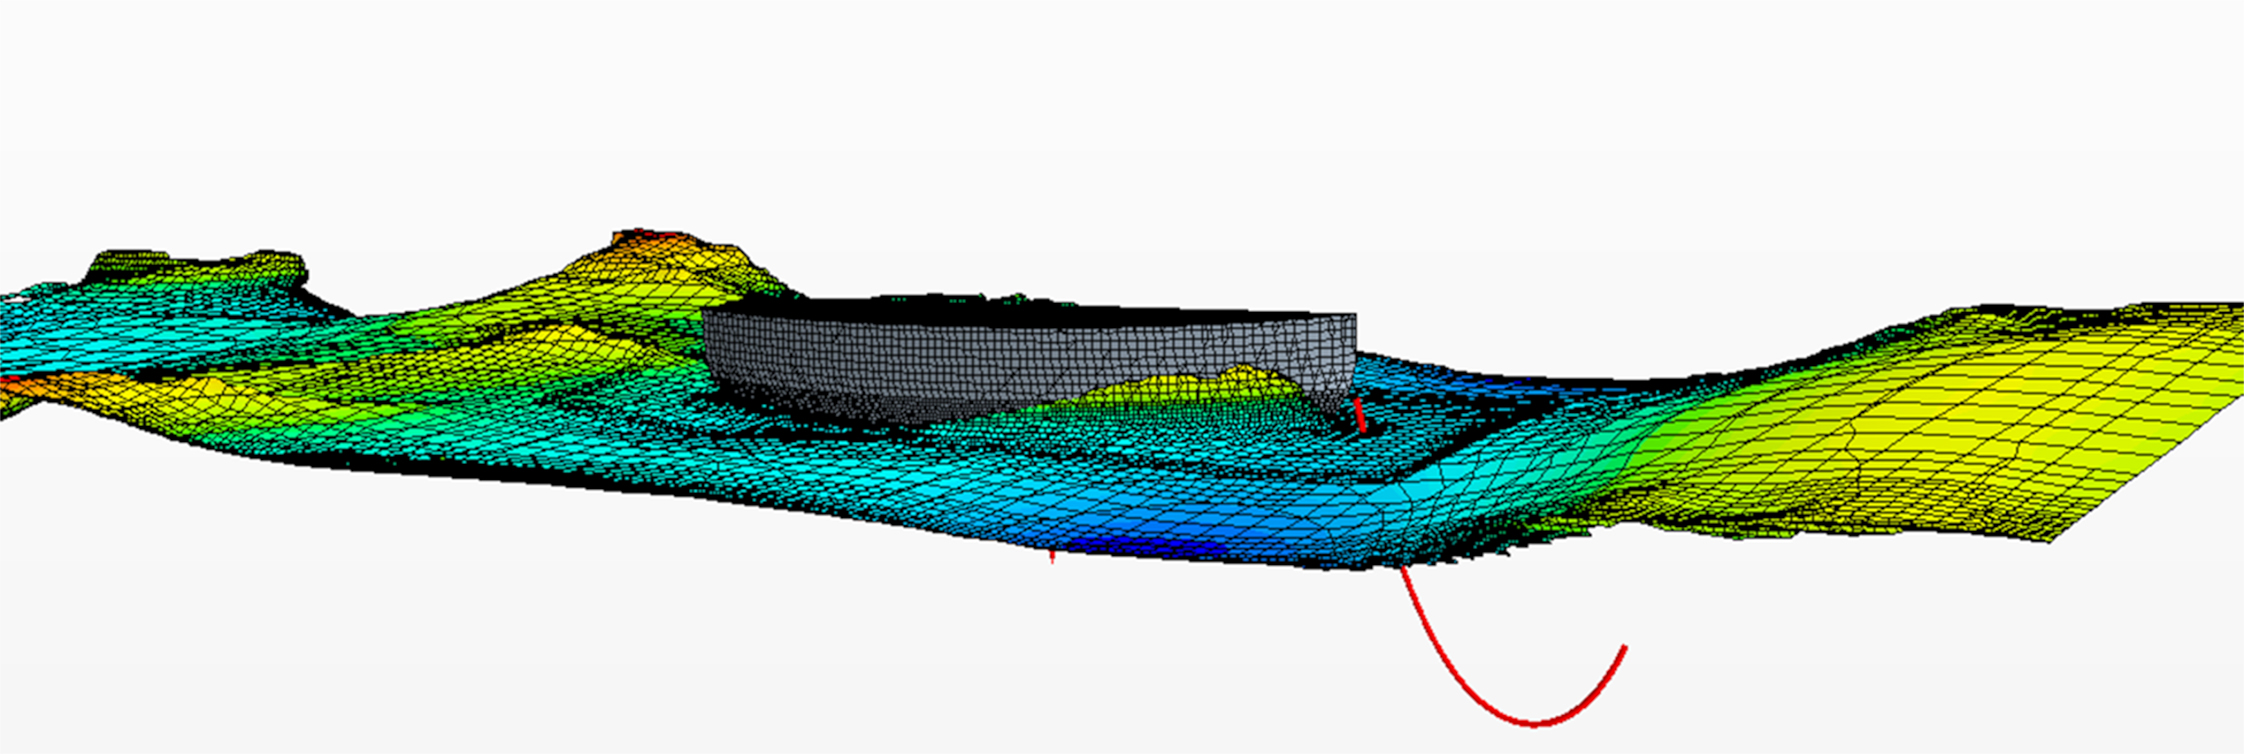 The wave motion and a ship's rolling motion can be simulated with Computational Fluid Dynamics (CFD).